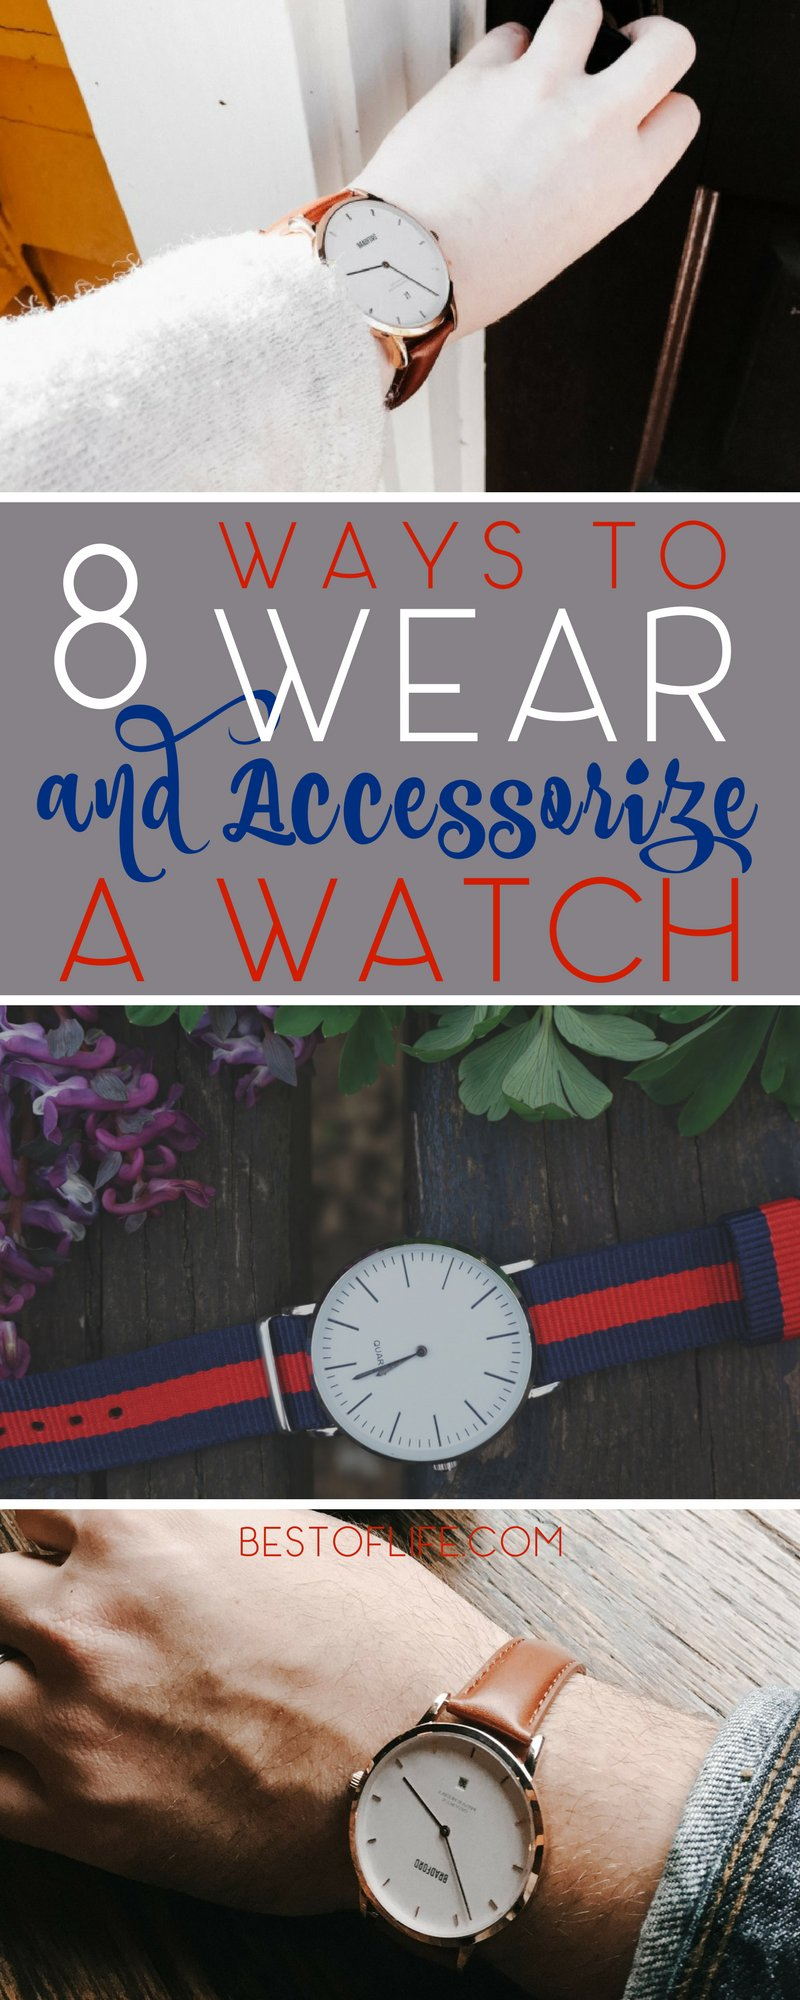 Express your personality when you wear a watch with fashionable looks and fun watch accessory ideas. How to Wear a Watch | Men's Fashion Tips | Jewelry Accessories | Watch Accessories  via @thebestoflife